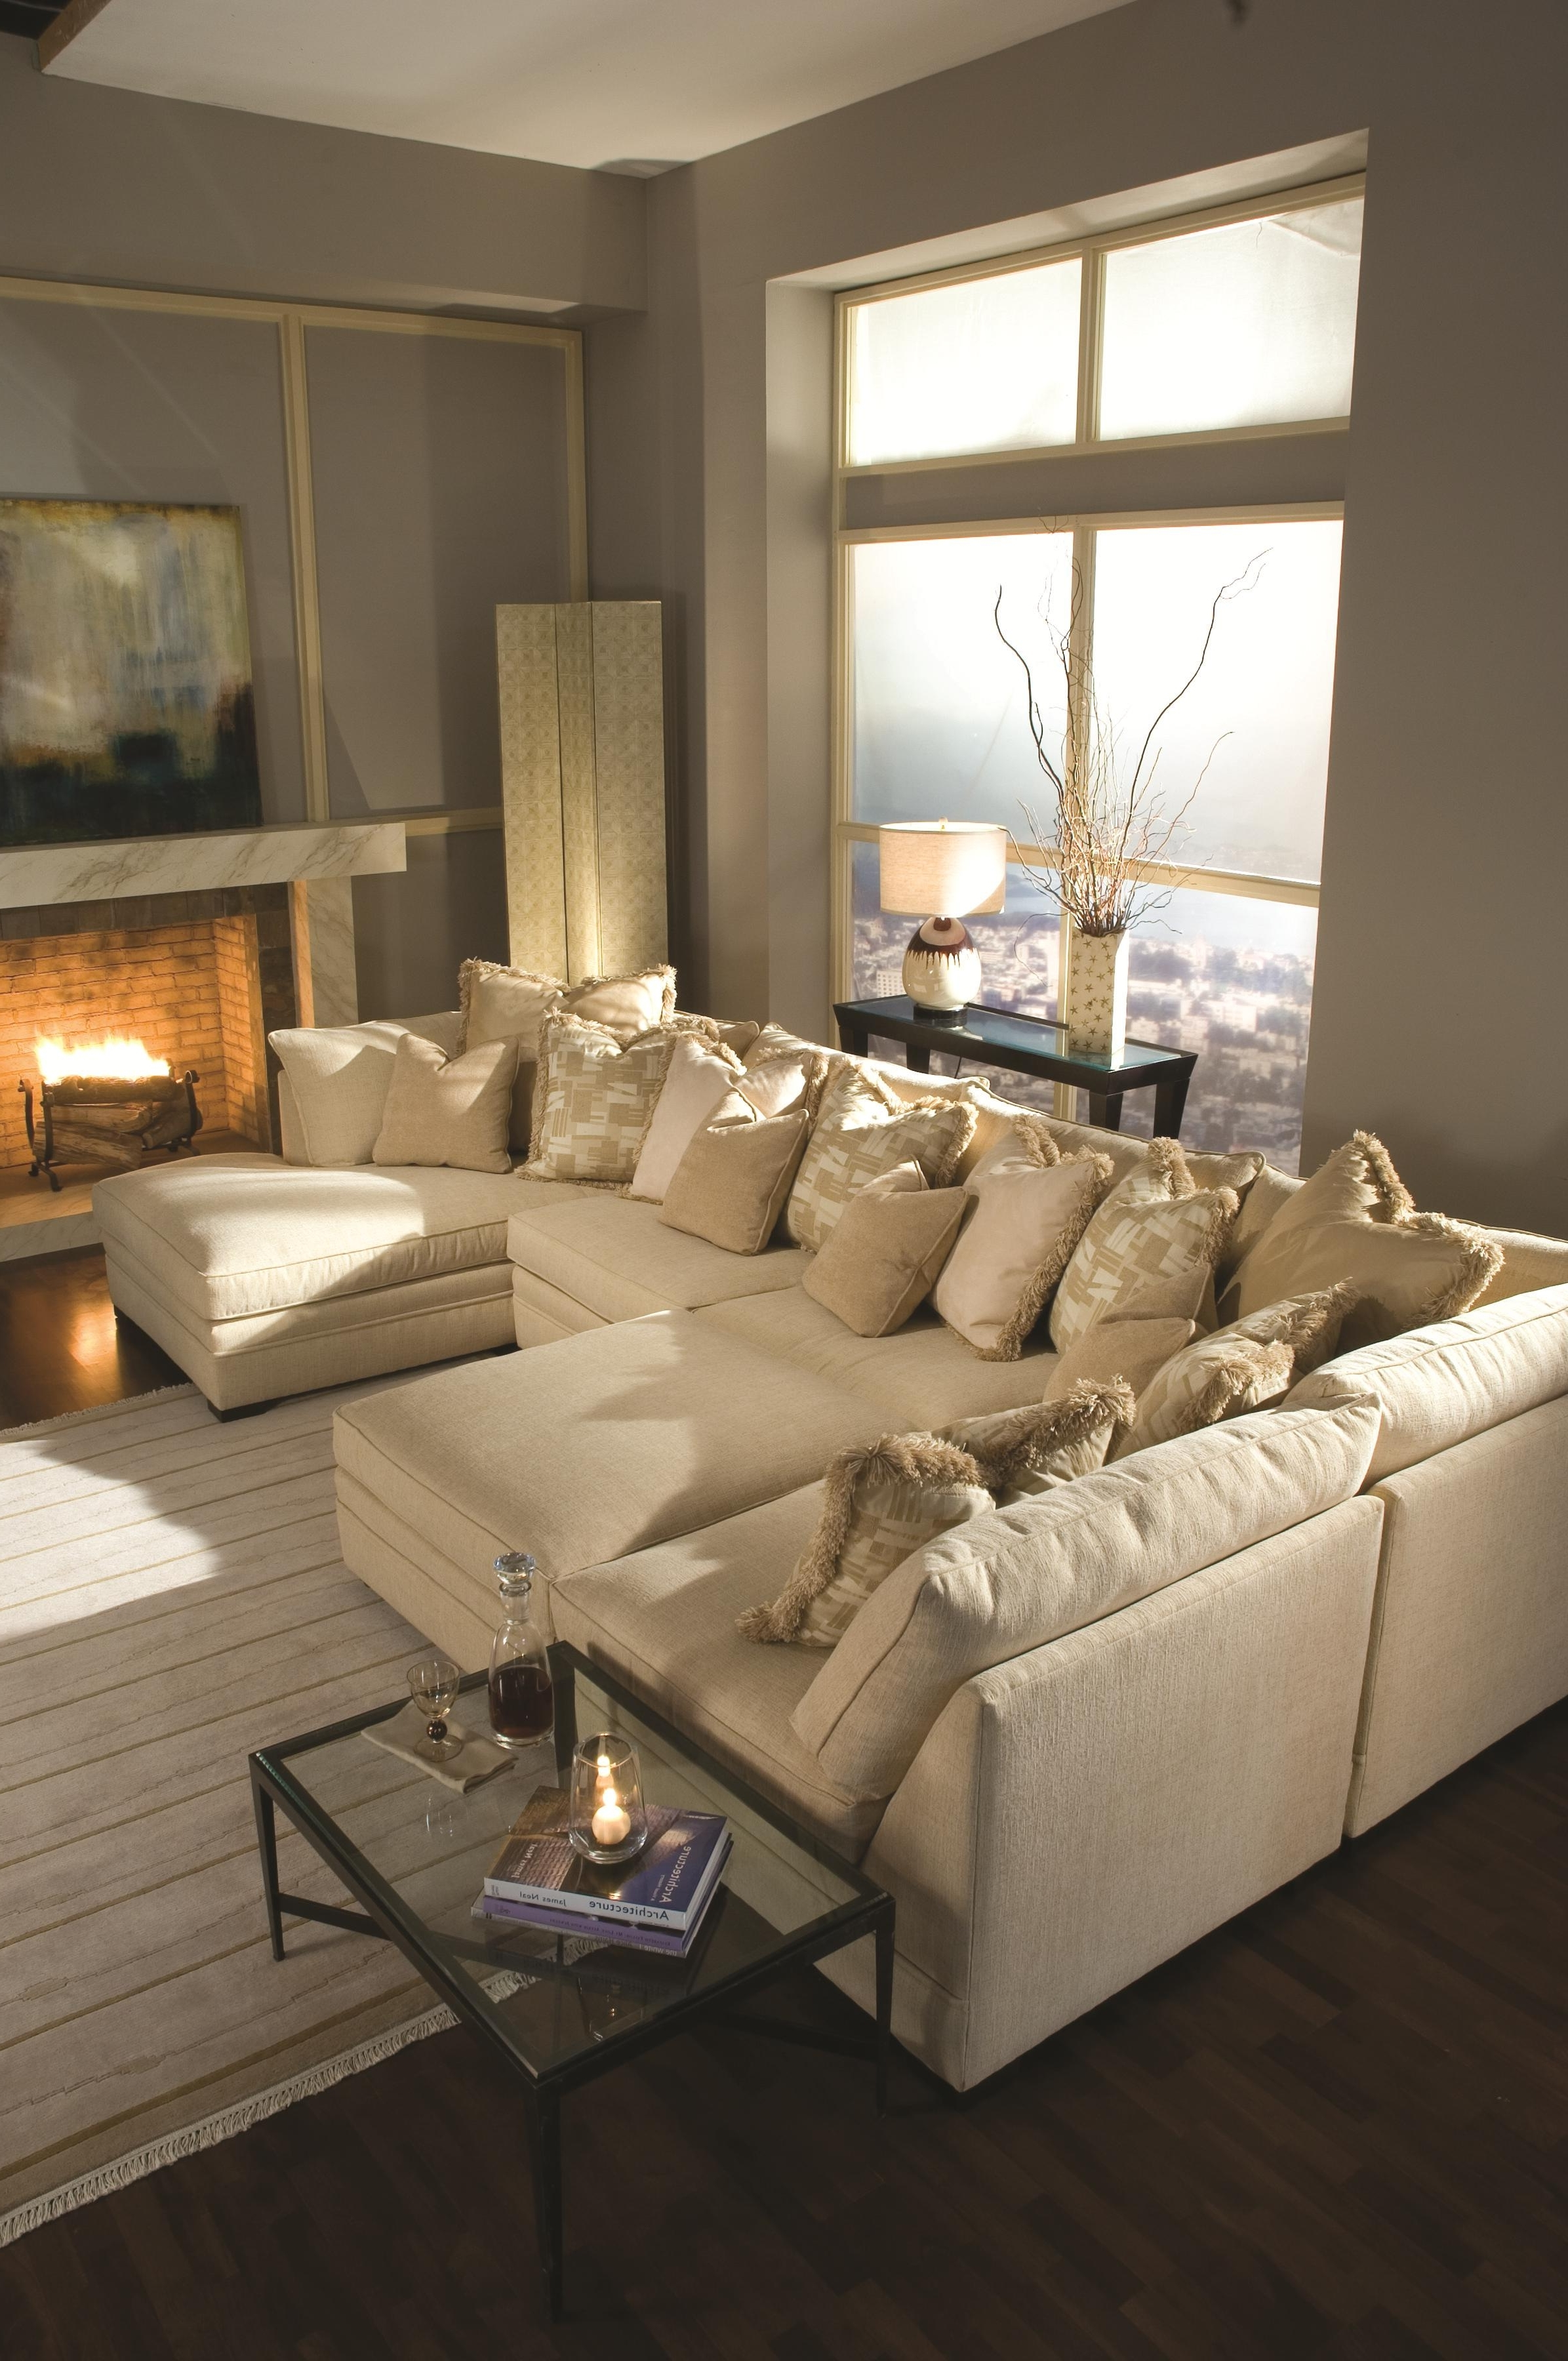 Preferred Geoffrey Alexander 7100 Contemporary U Shape Sectional Sofa With In Nashville Sectional Sofas (View 14 of 15)